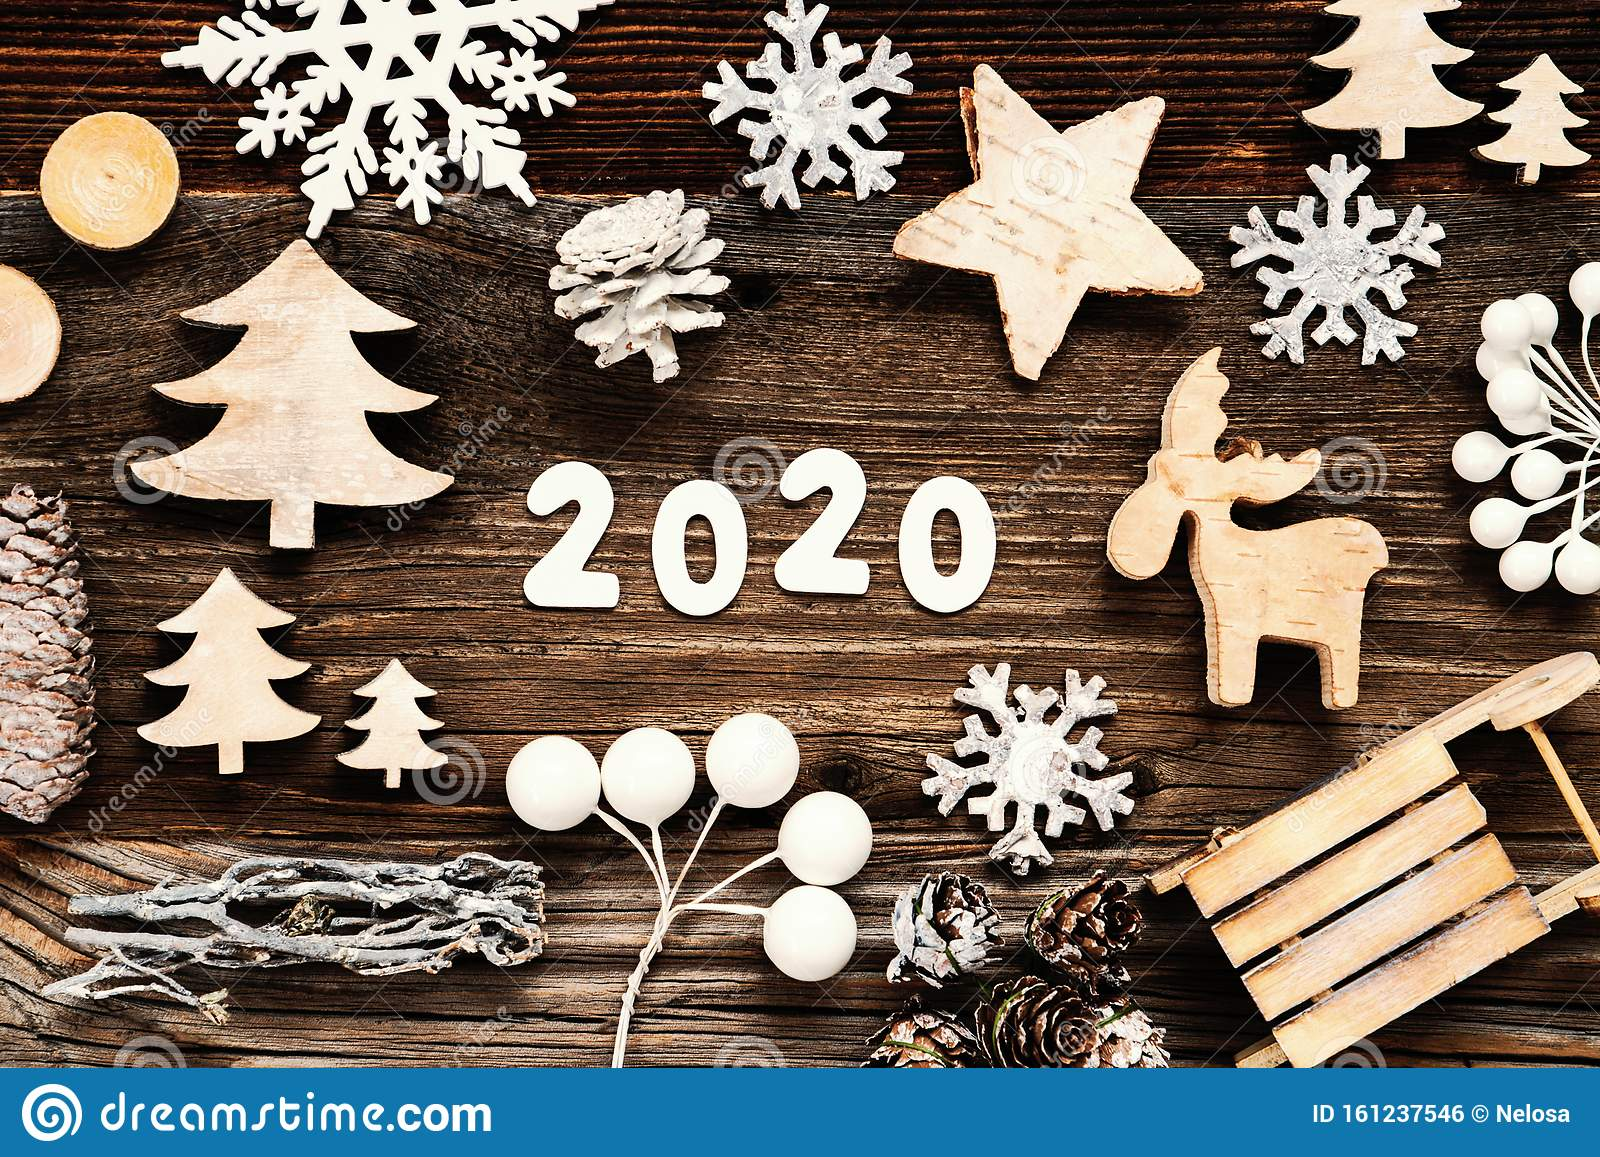 Rustic Wooden Christmas Decoration 2020 Seld And Tree Stock Photo Image Of Wooden Winter 161237546